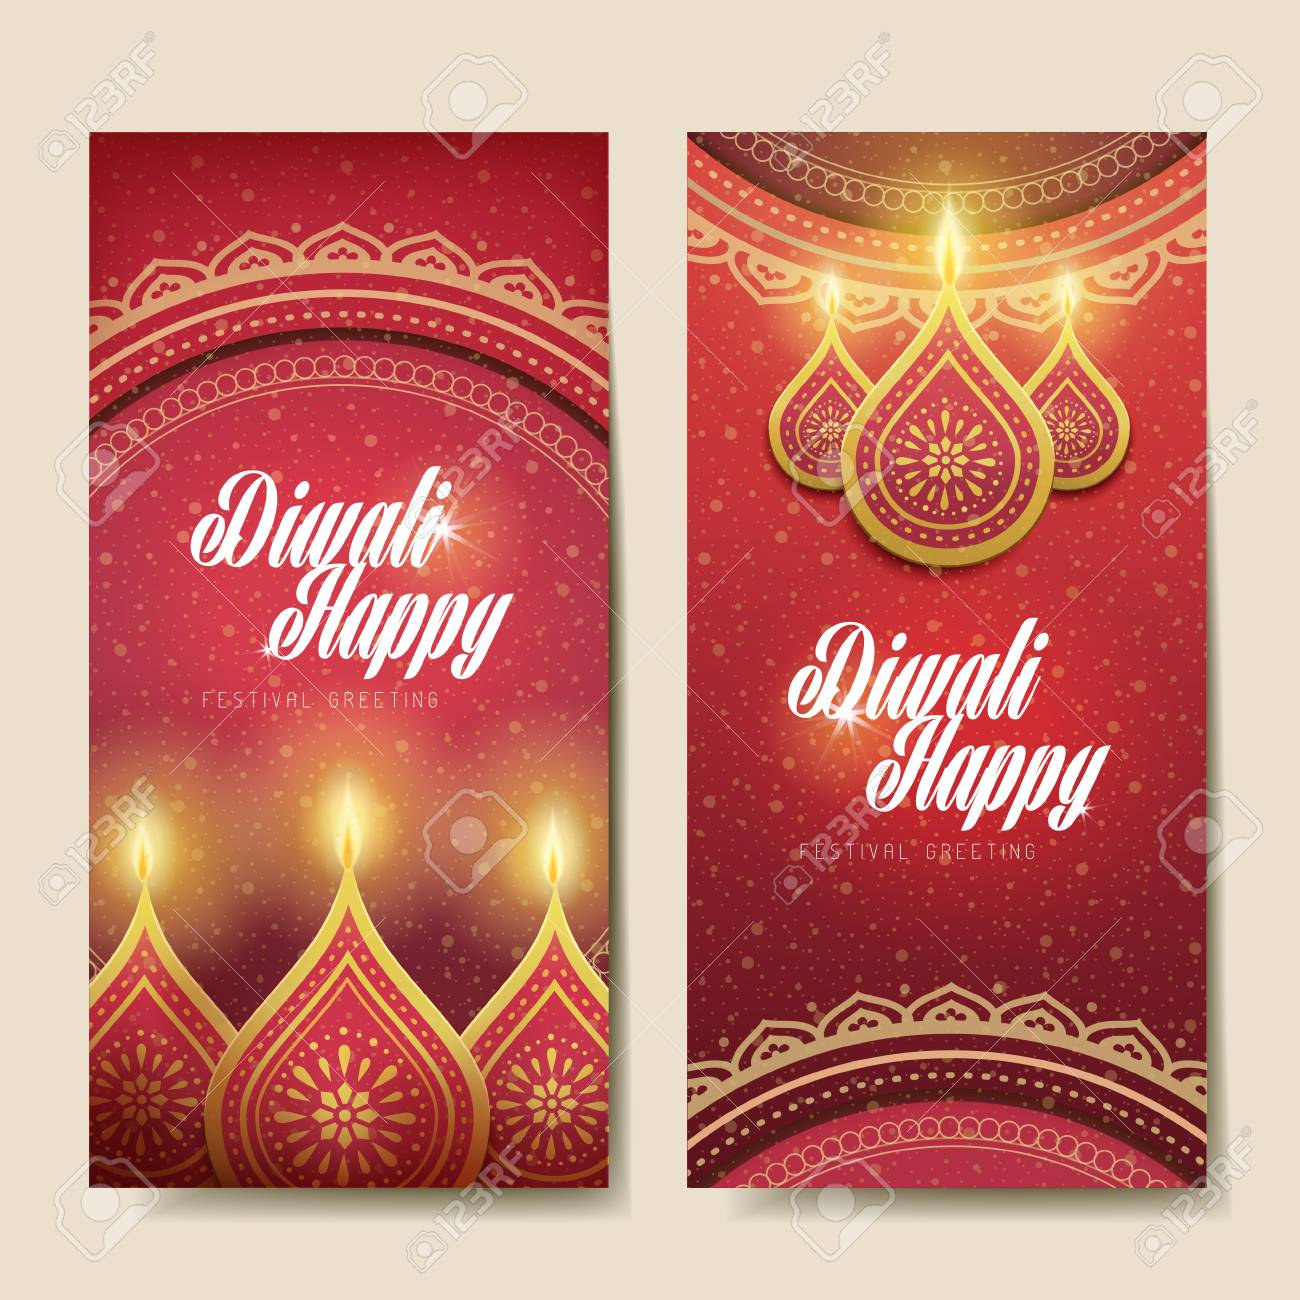 Happy diwali festival greeting text card with candle decorations happy diwali festival greeting text card with candle decorations and white background stock vector m4hsunfo